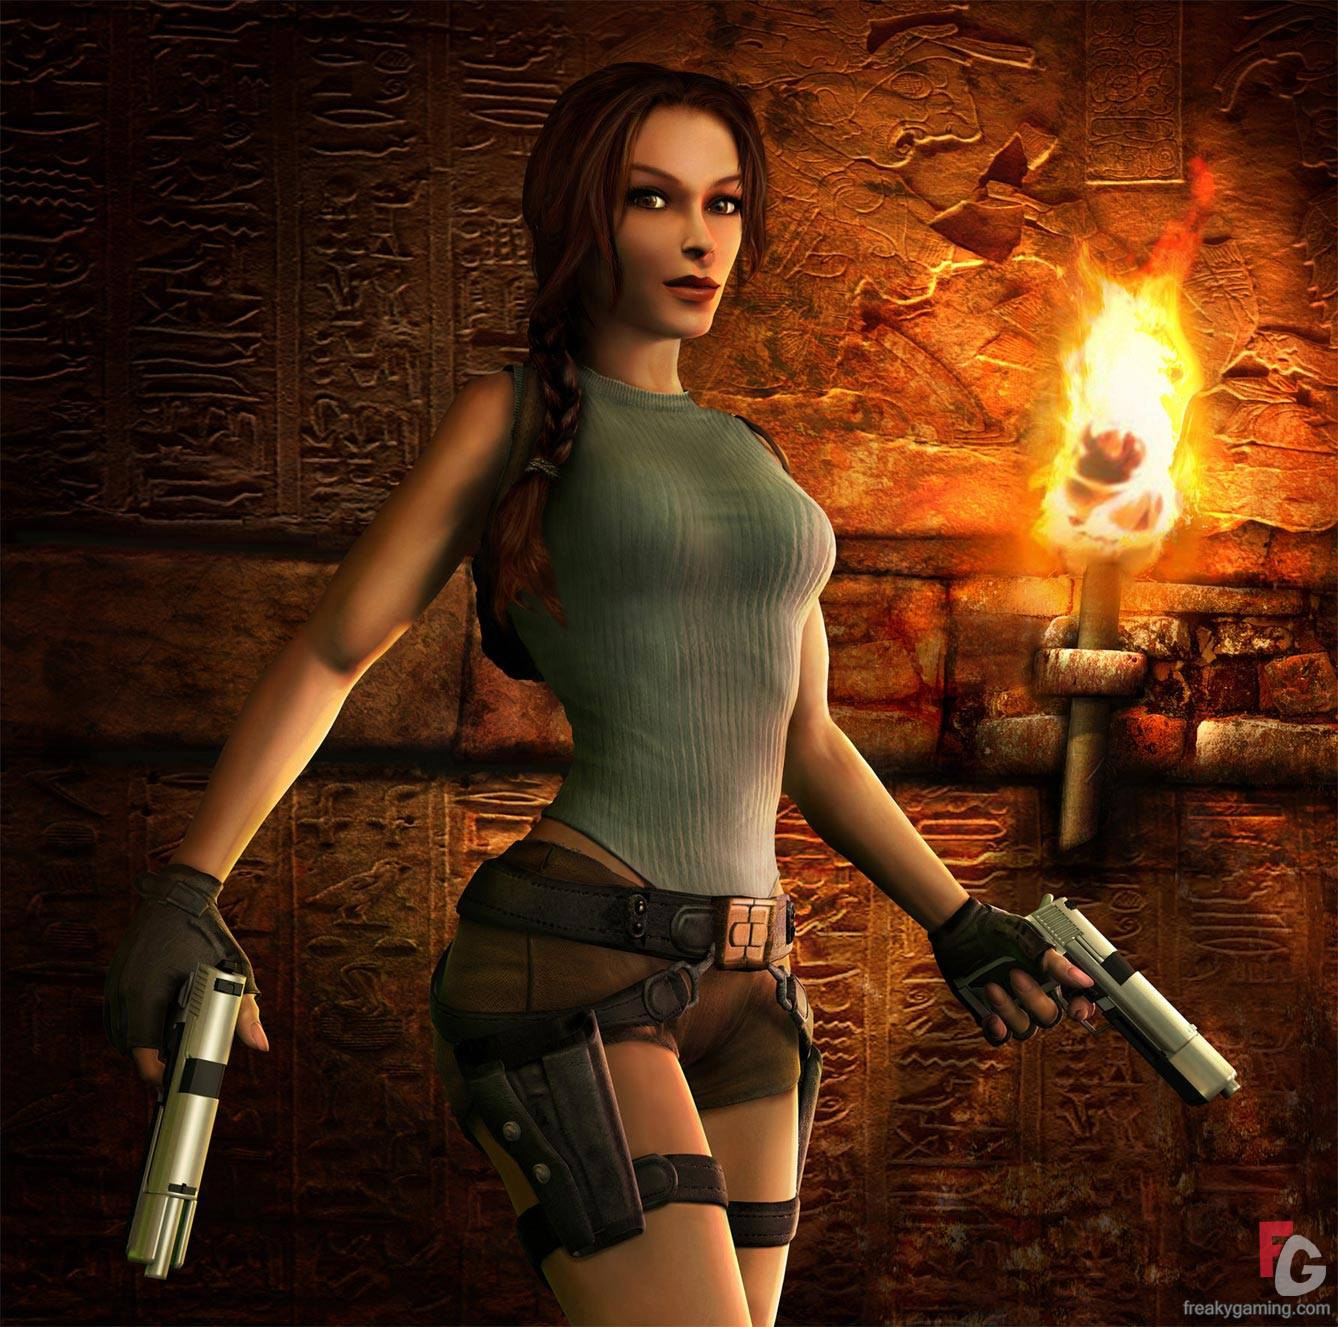 Photo lara croft pornographie xxx scenes